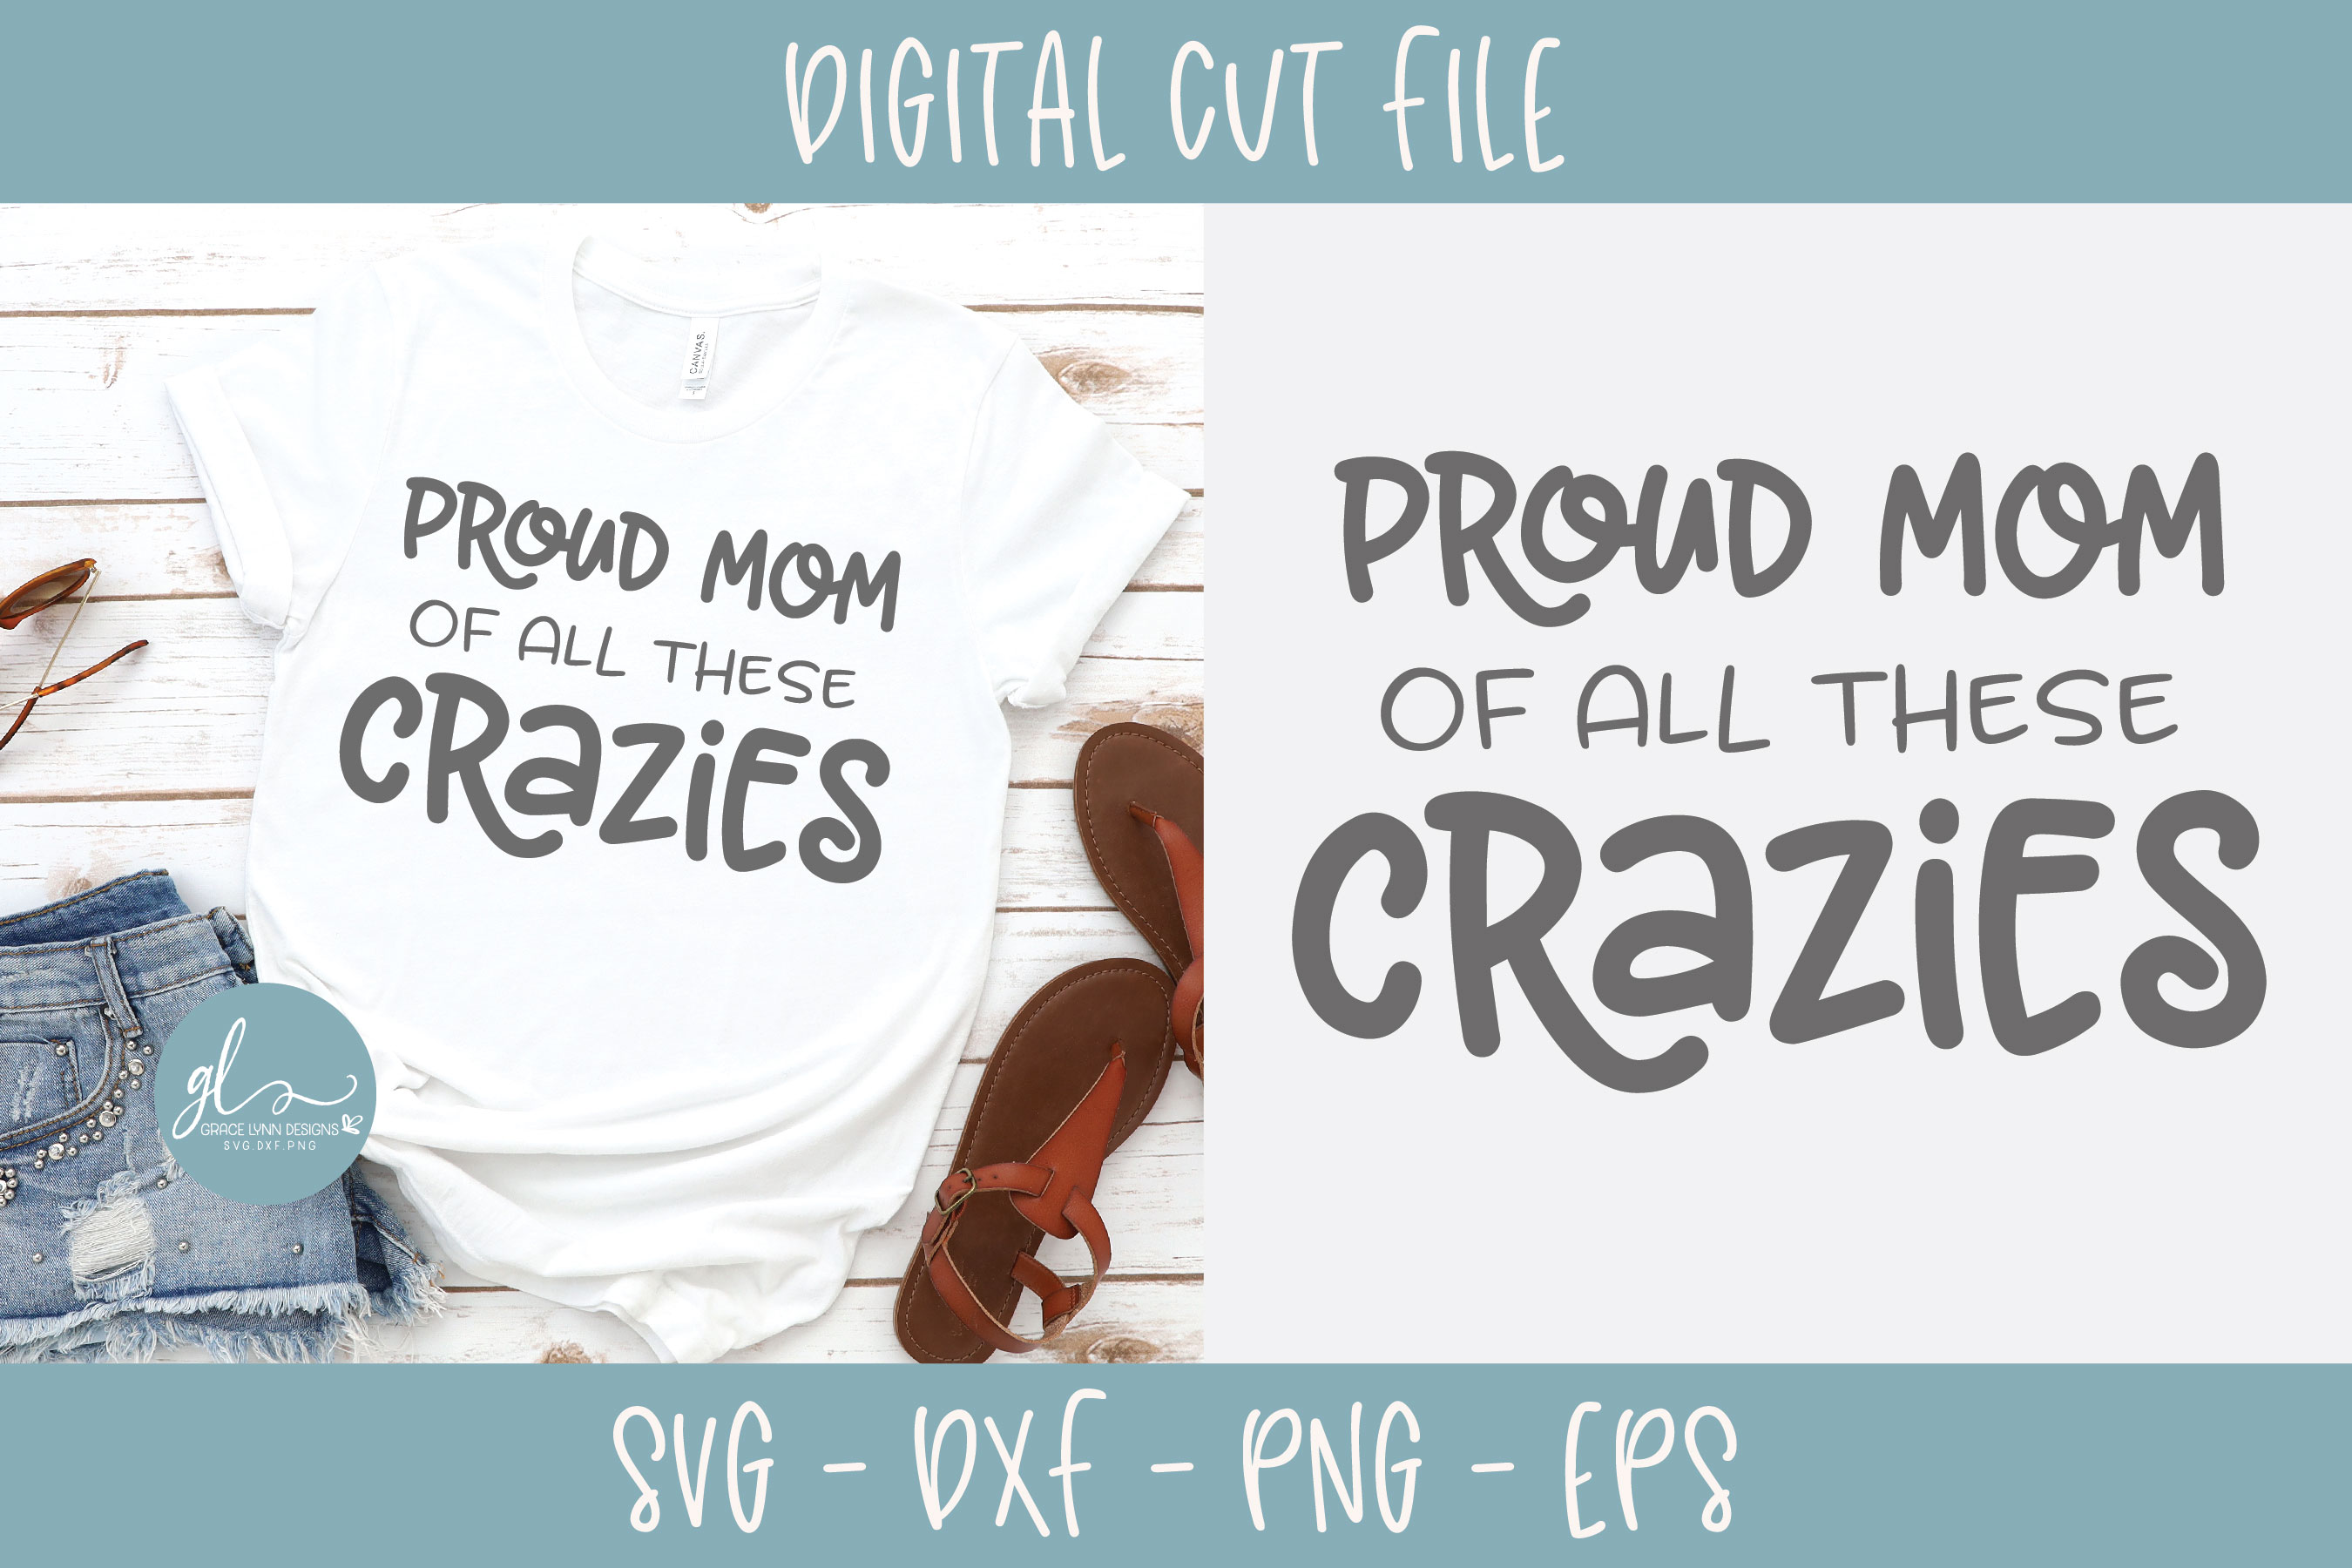 Proud Mom Of All These Crazies - SVG Cut File example image 1